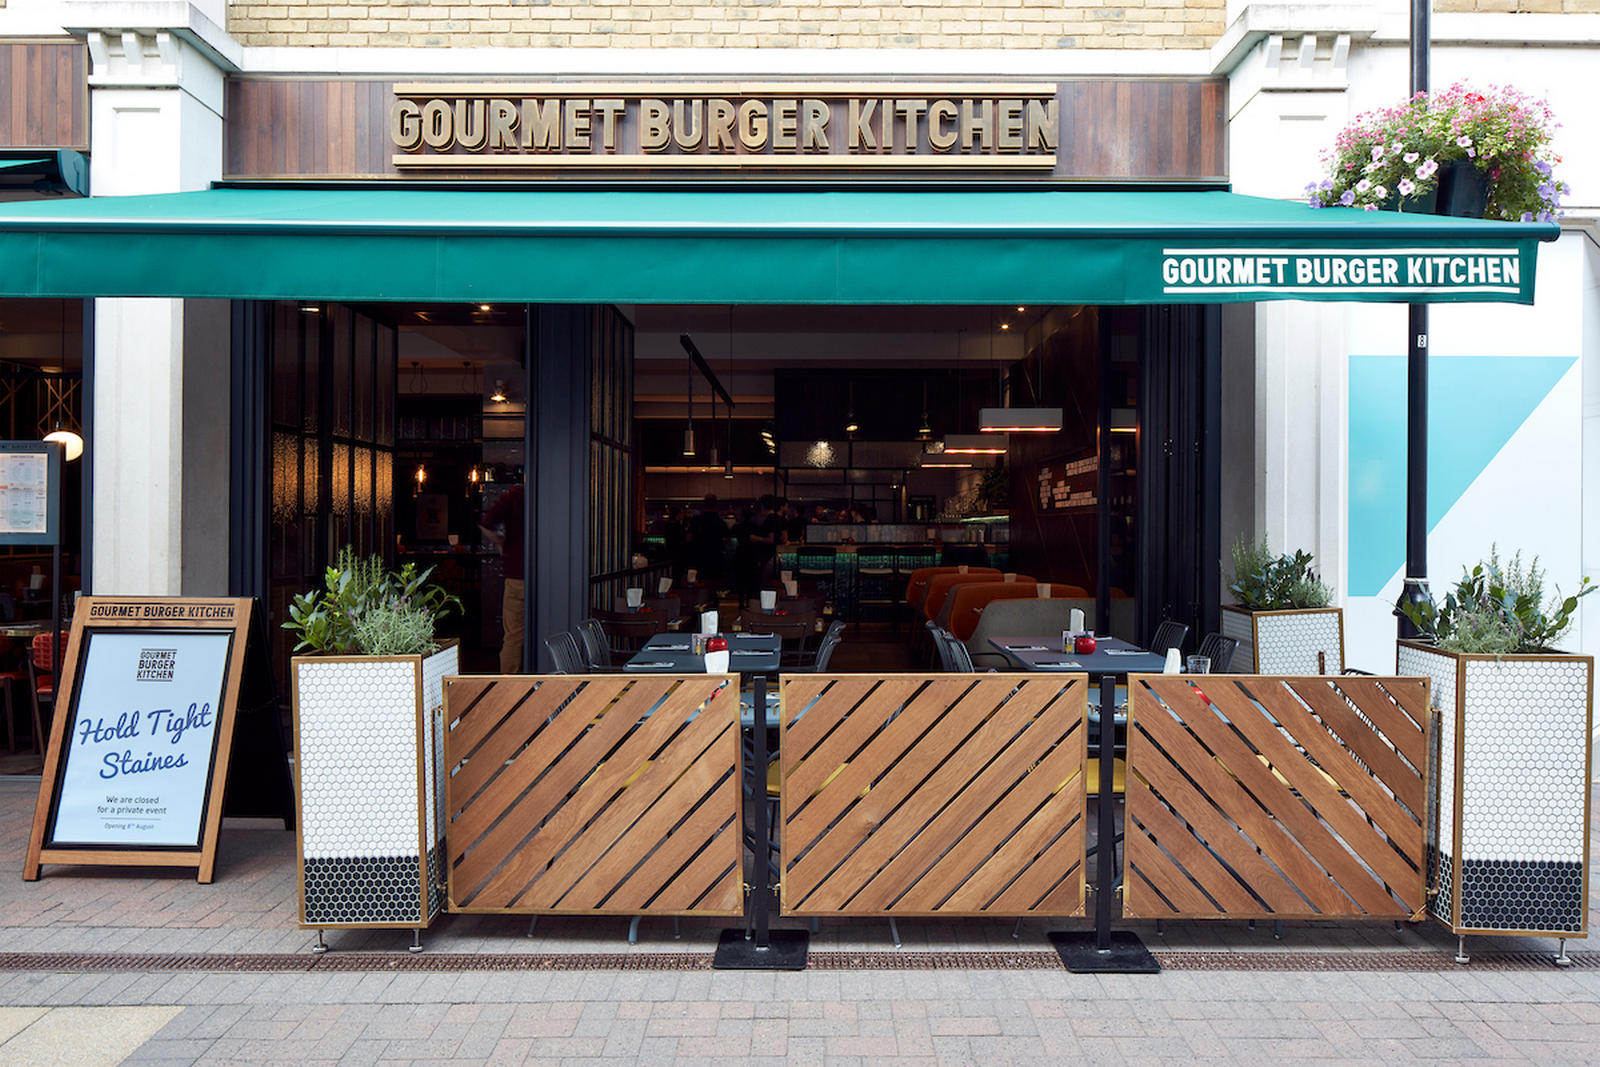 left shows gourmet burger kitchen temple bar place